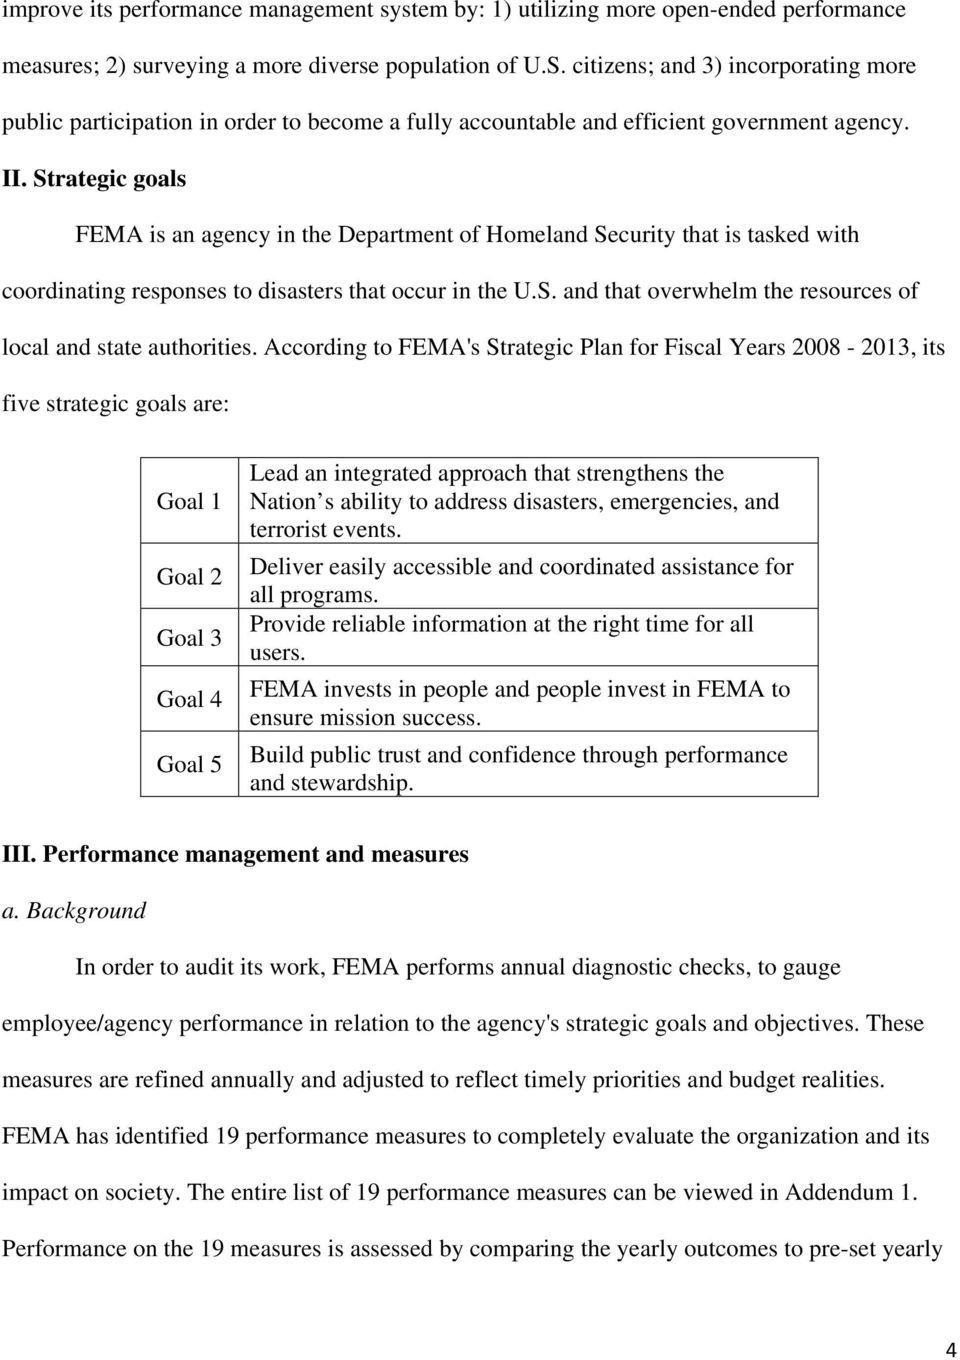 Strategic goals FEMA is an agency in the Department of Homeland Security that is tasked with coordinating responses to disasters that occur in the U.S. and that overwhelm the resources of local and state authorities.